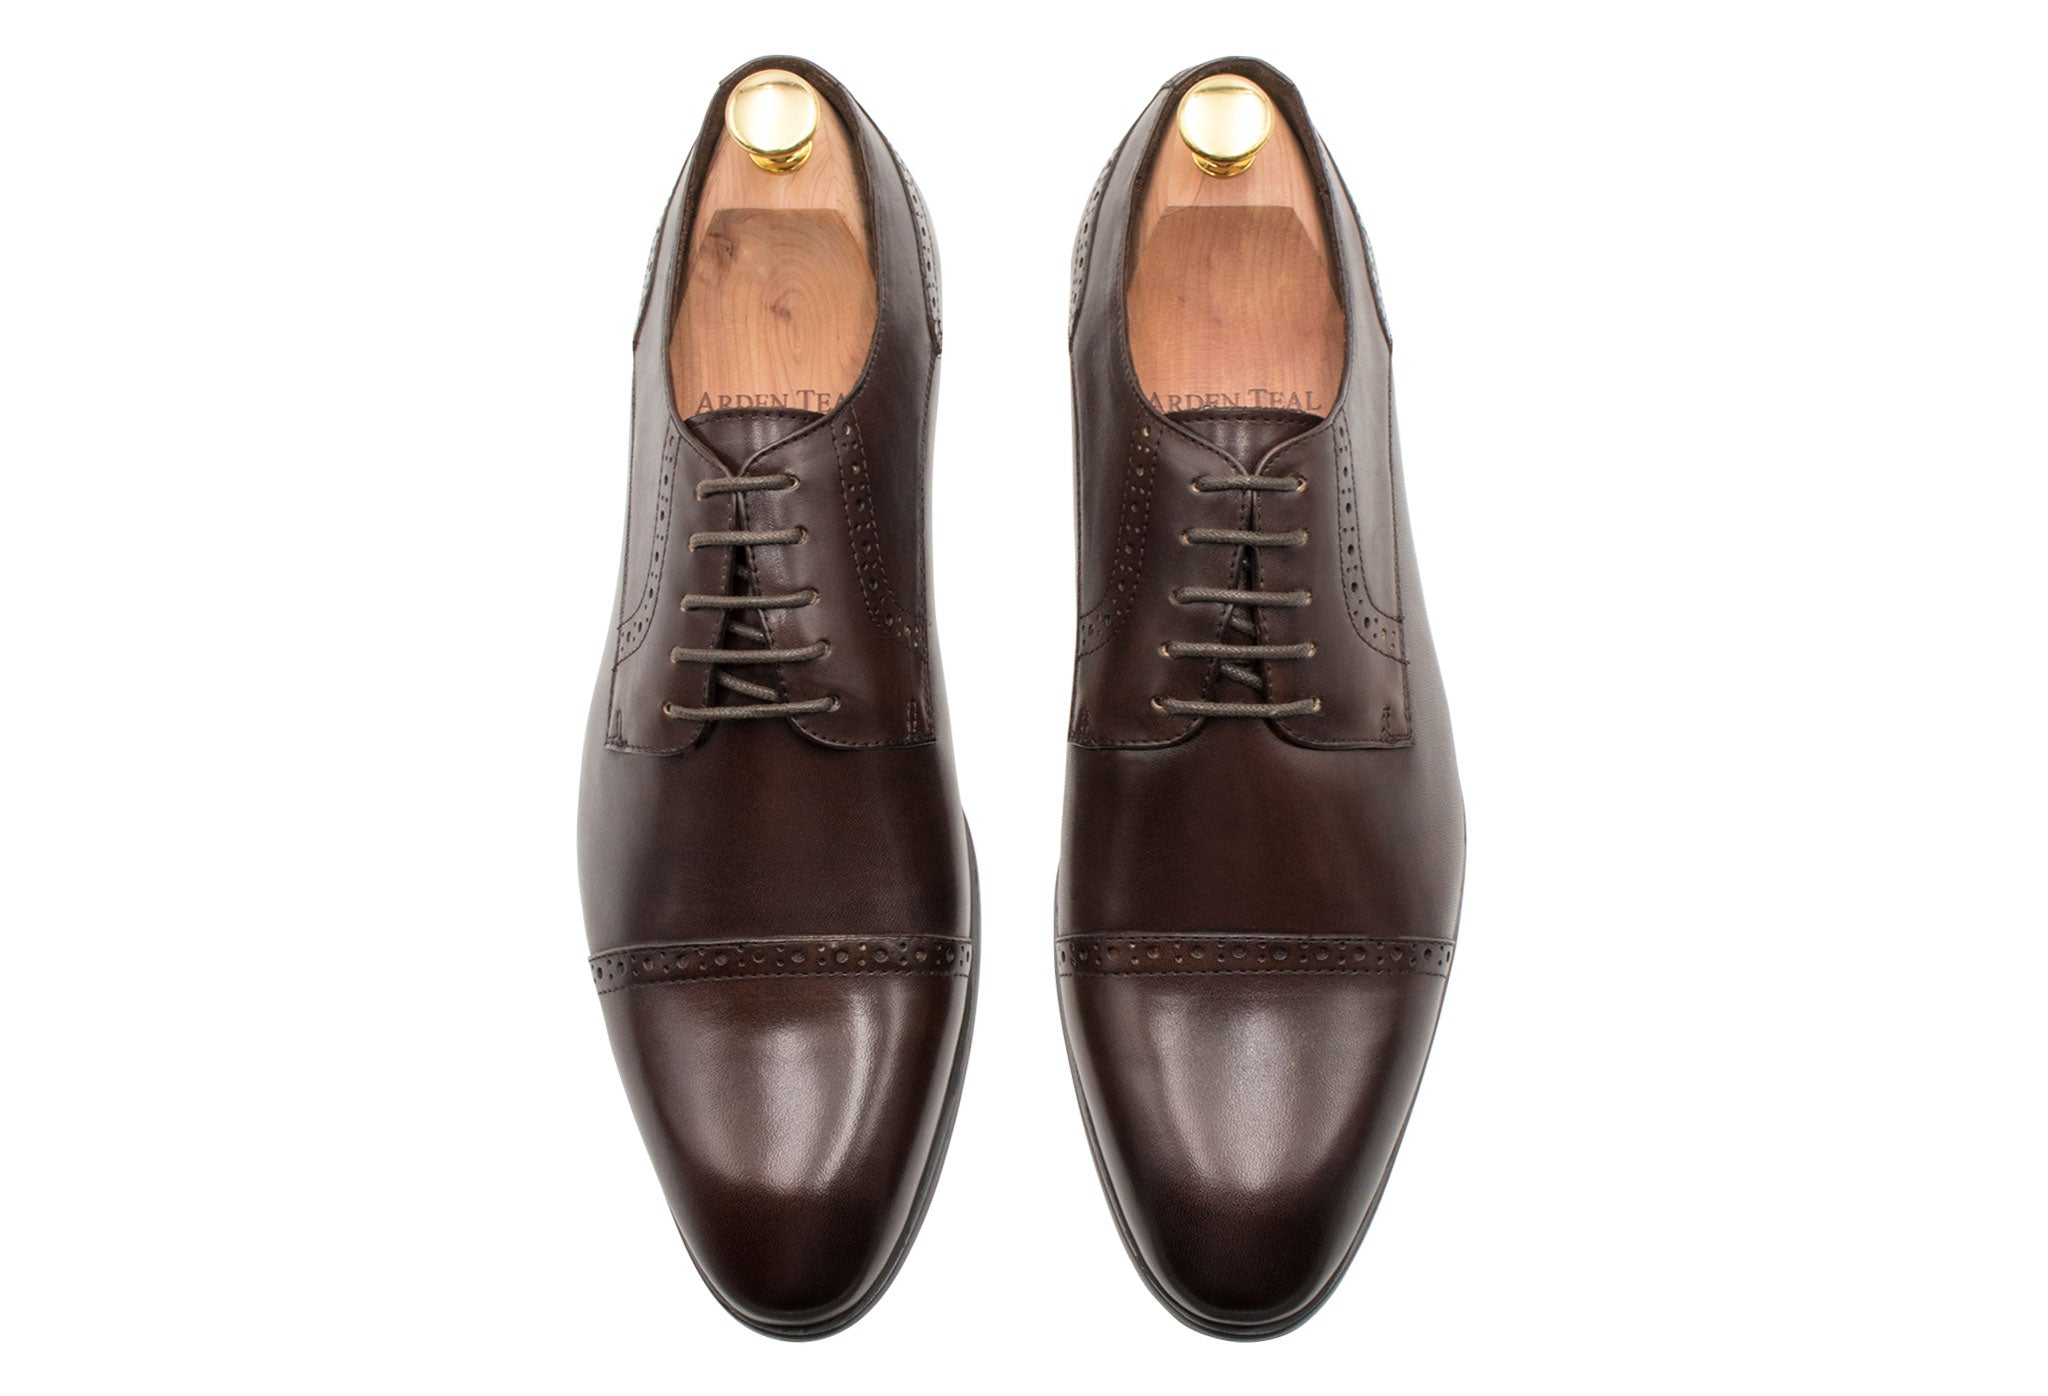 Estero Straight Cap Walnut Derby